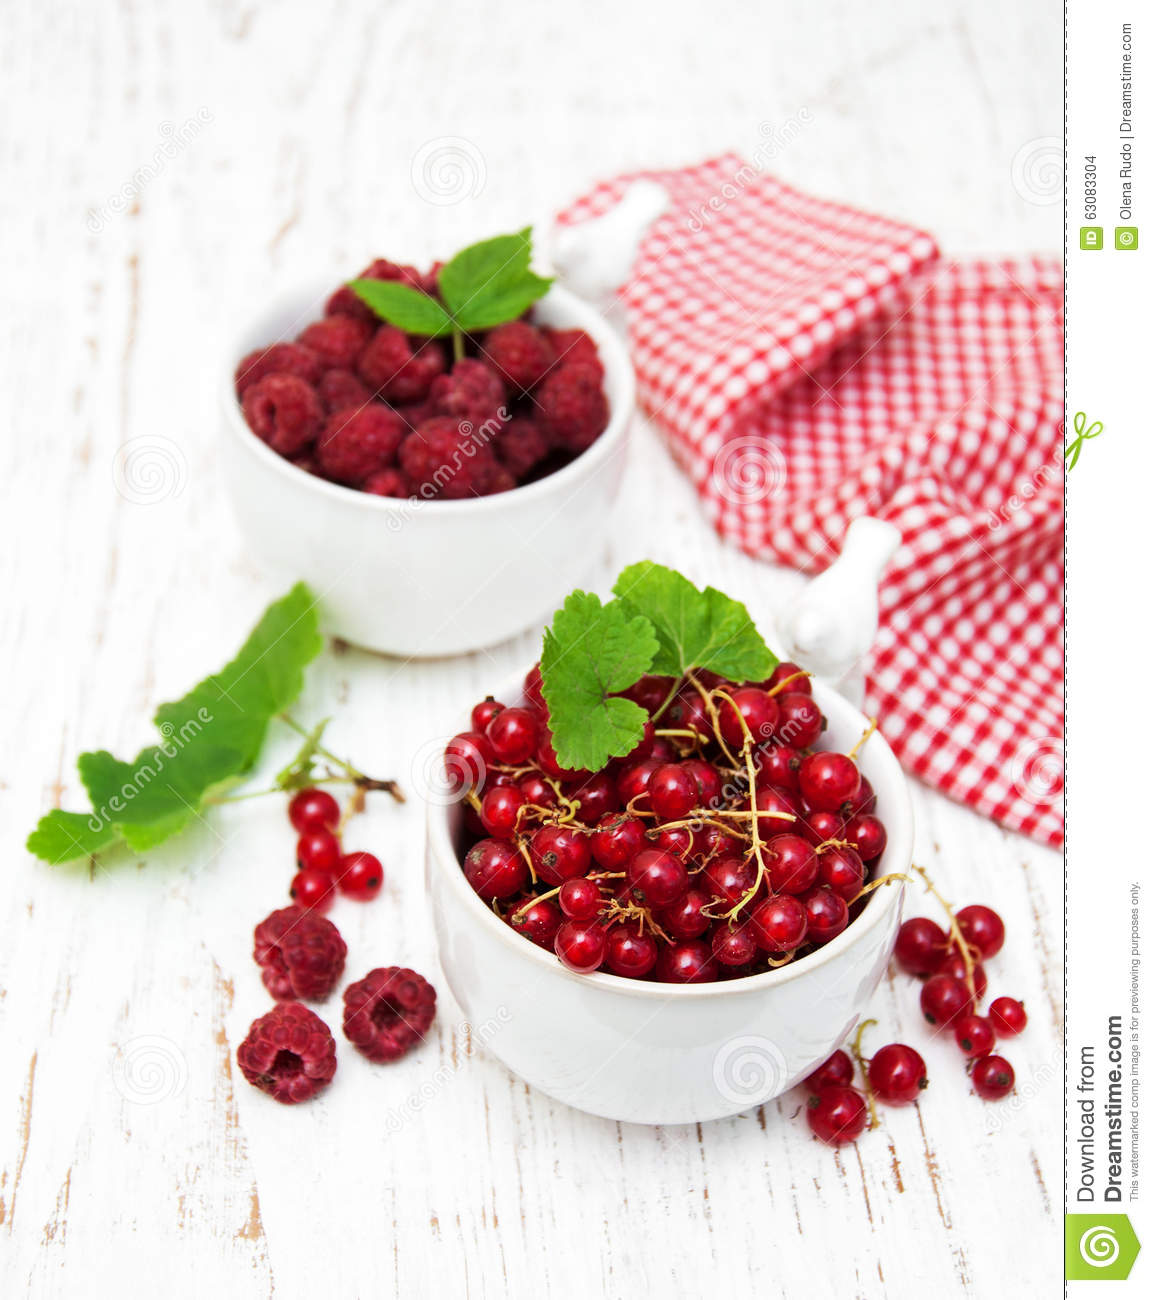 Download Groseille Rouge Et Framboises Photo stock - Image du délicieux, dessert: 63083304